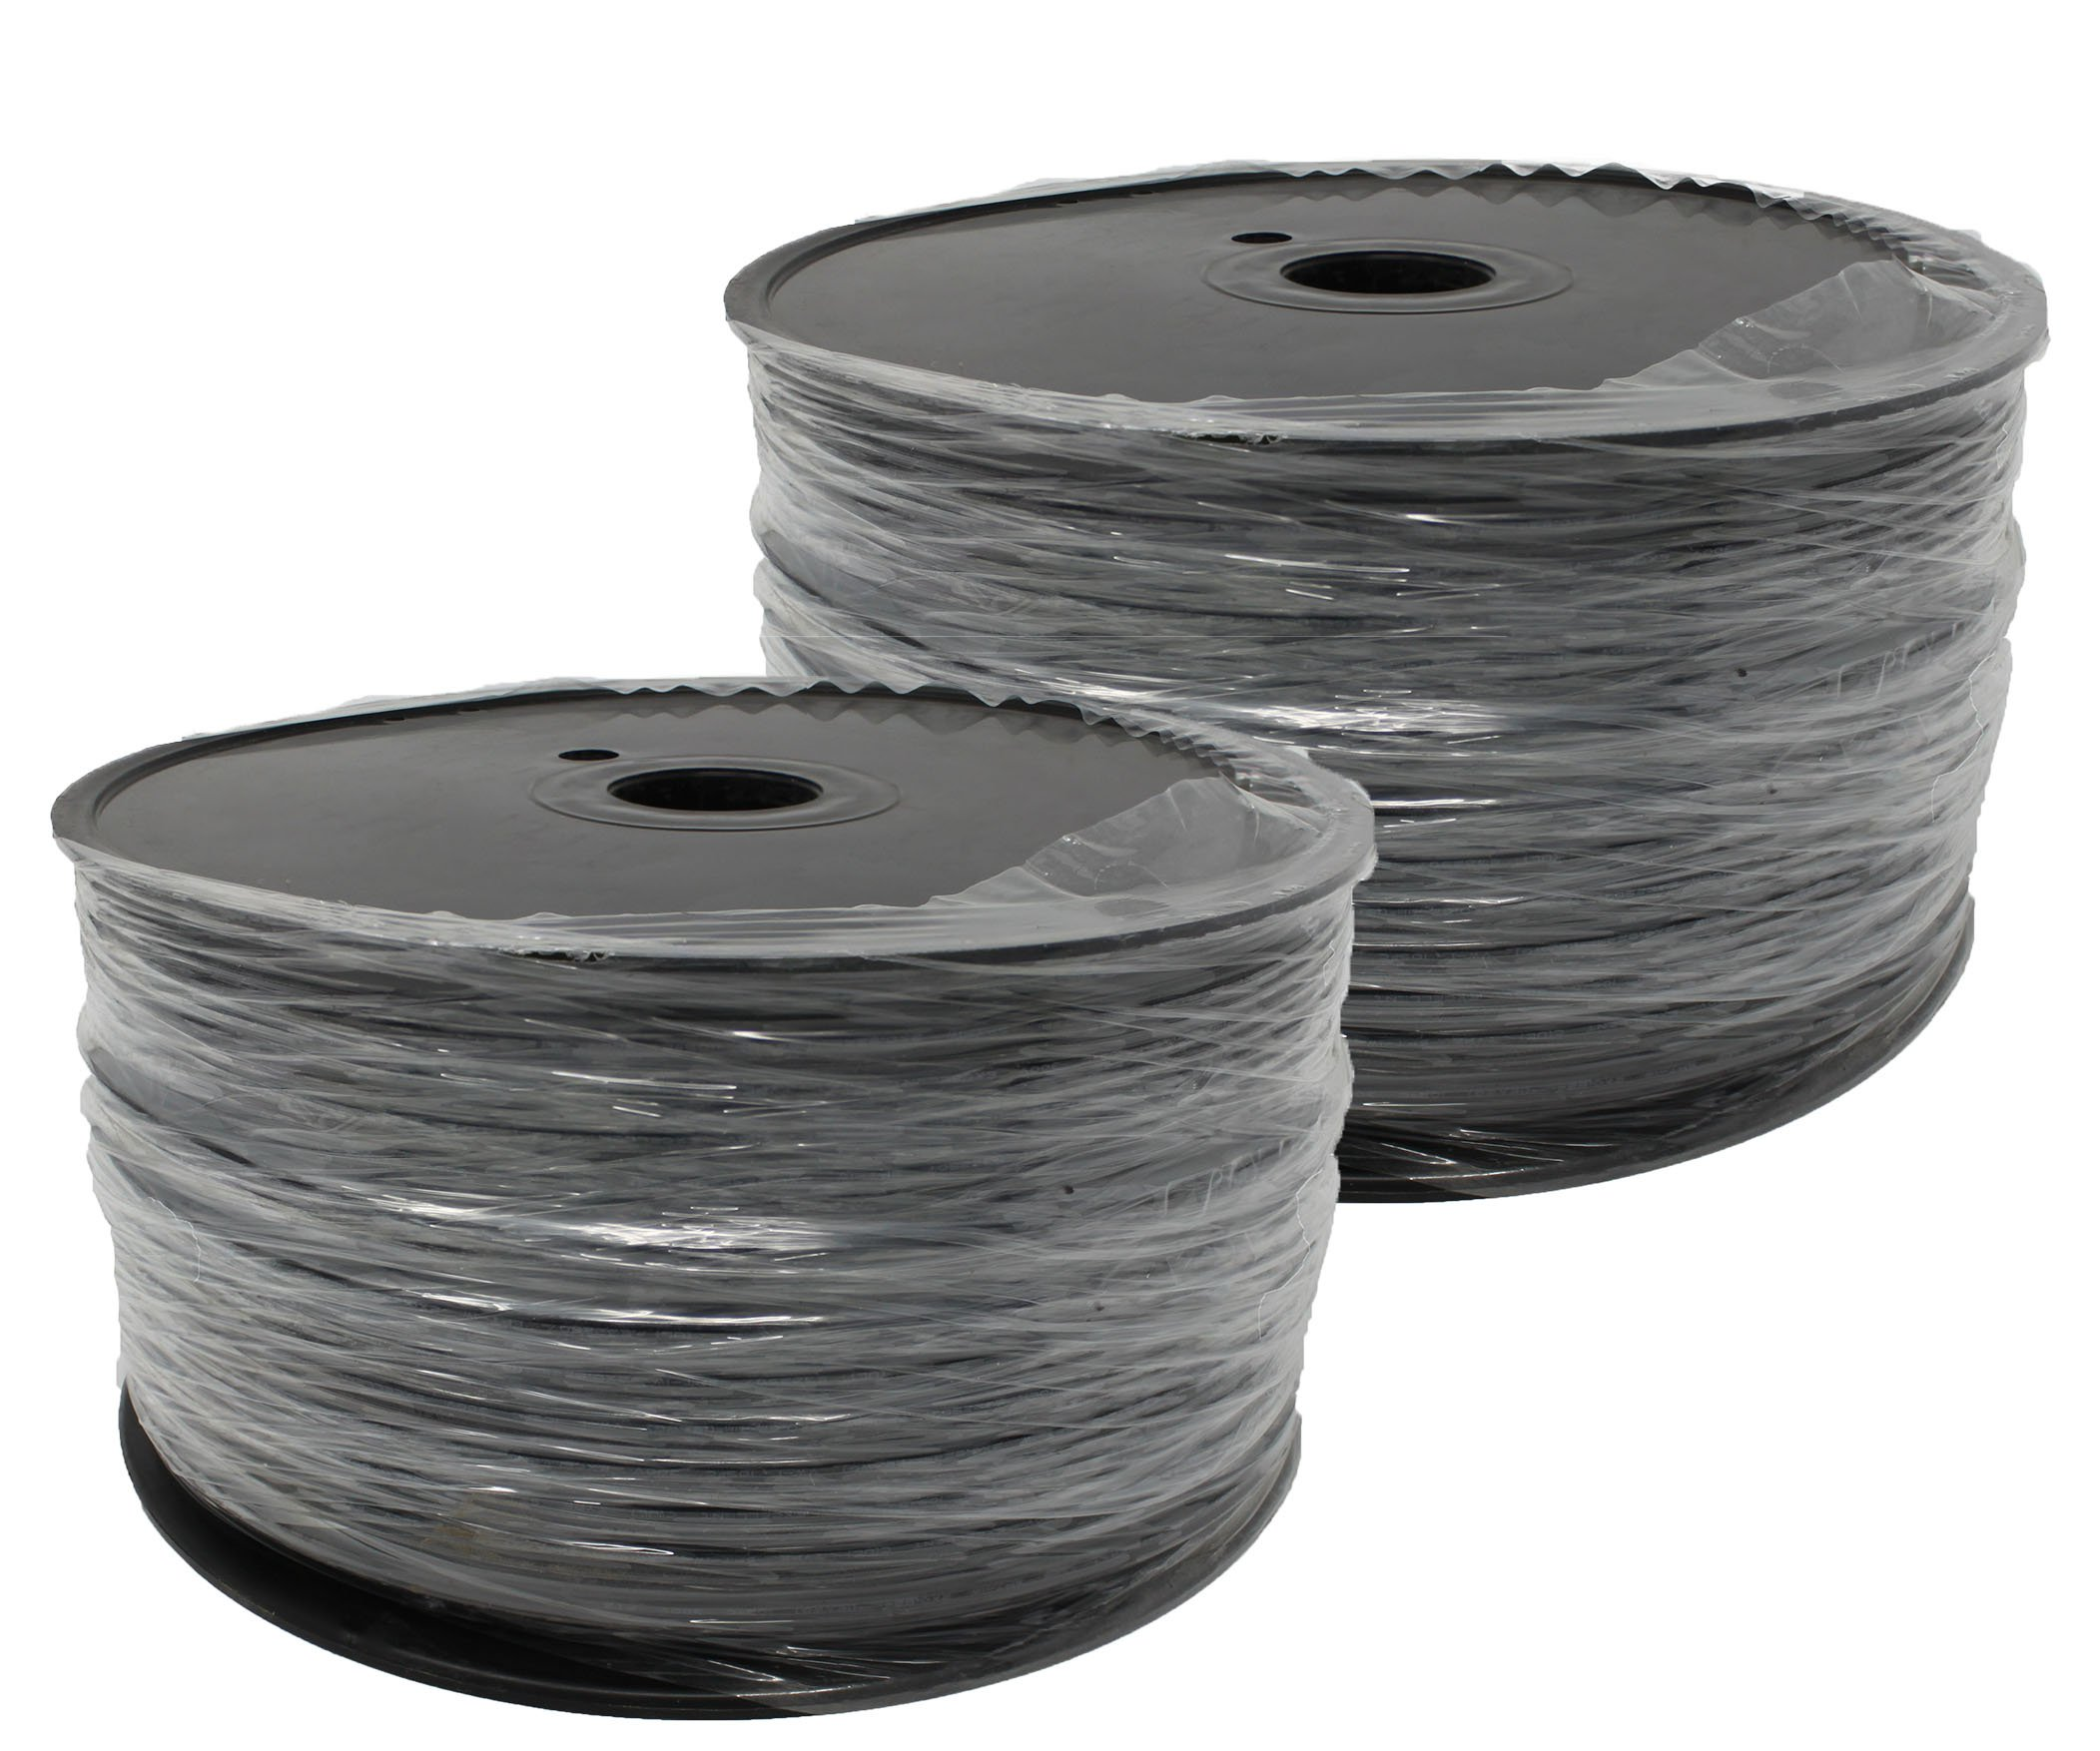 Green Zip Cord, SPT-2, 18/2, UL Listed, 1000' (2 x 500' Spools)